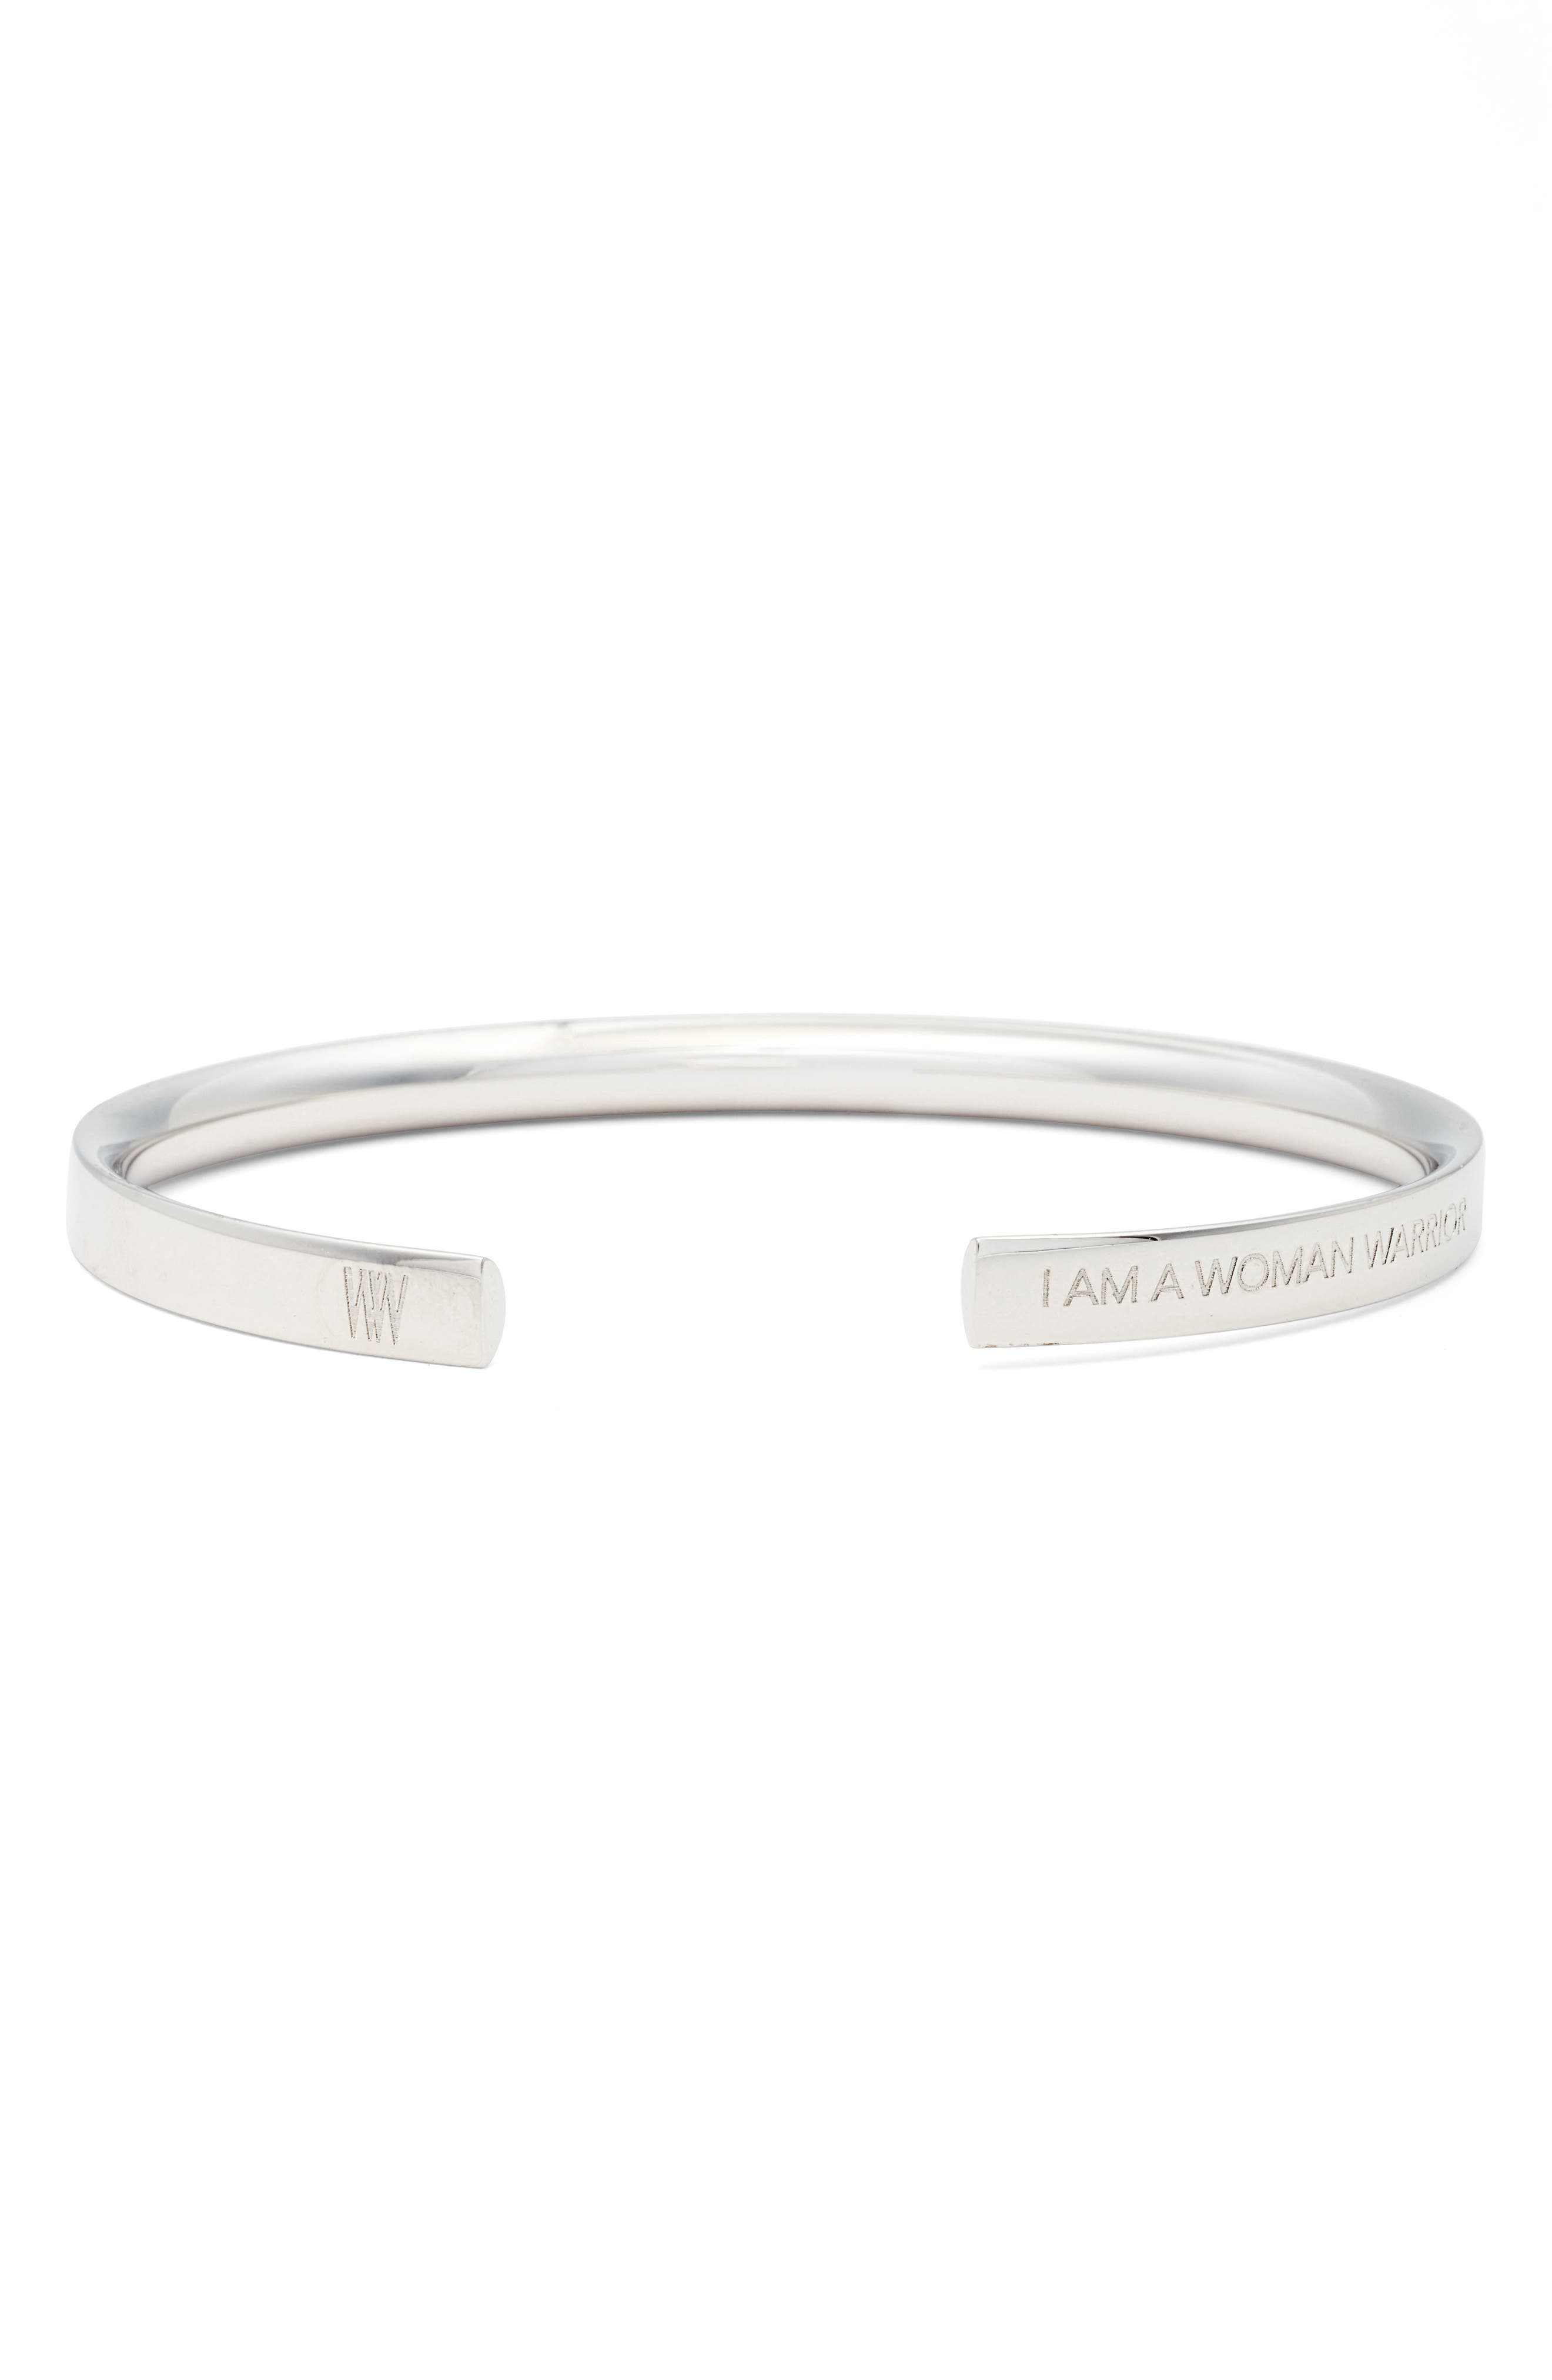 STELLA VALLE Warrior Wrist Cuff